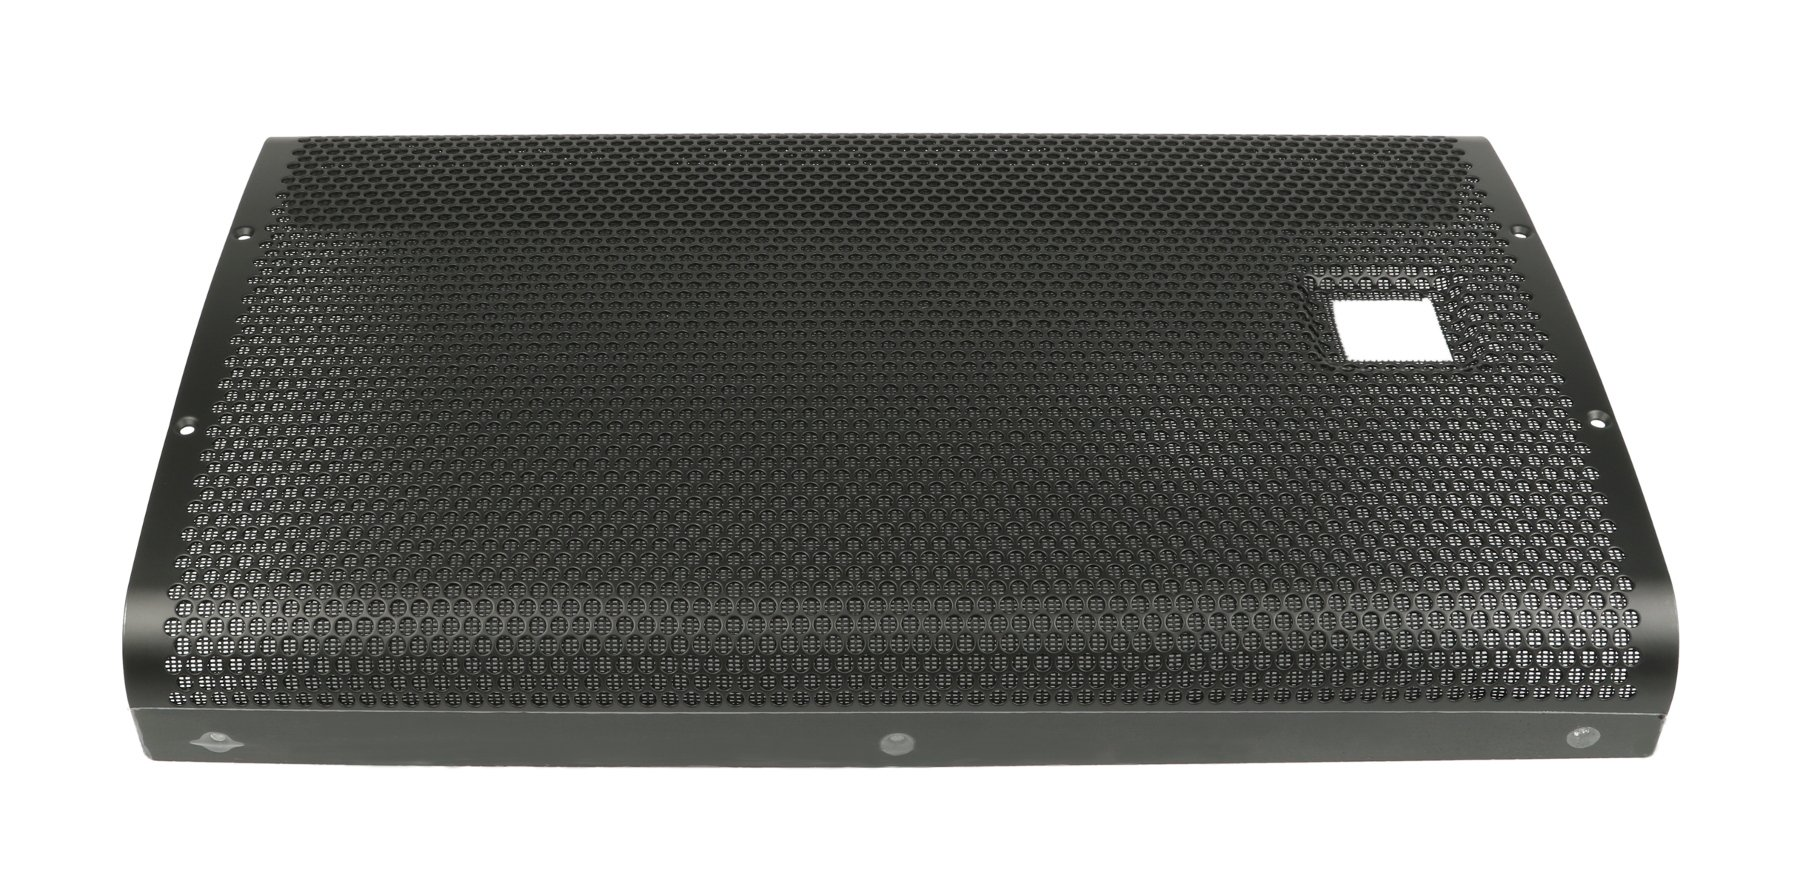 Grille for ELX112 Live X Series